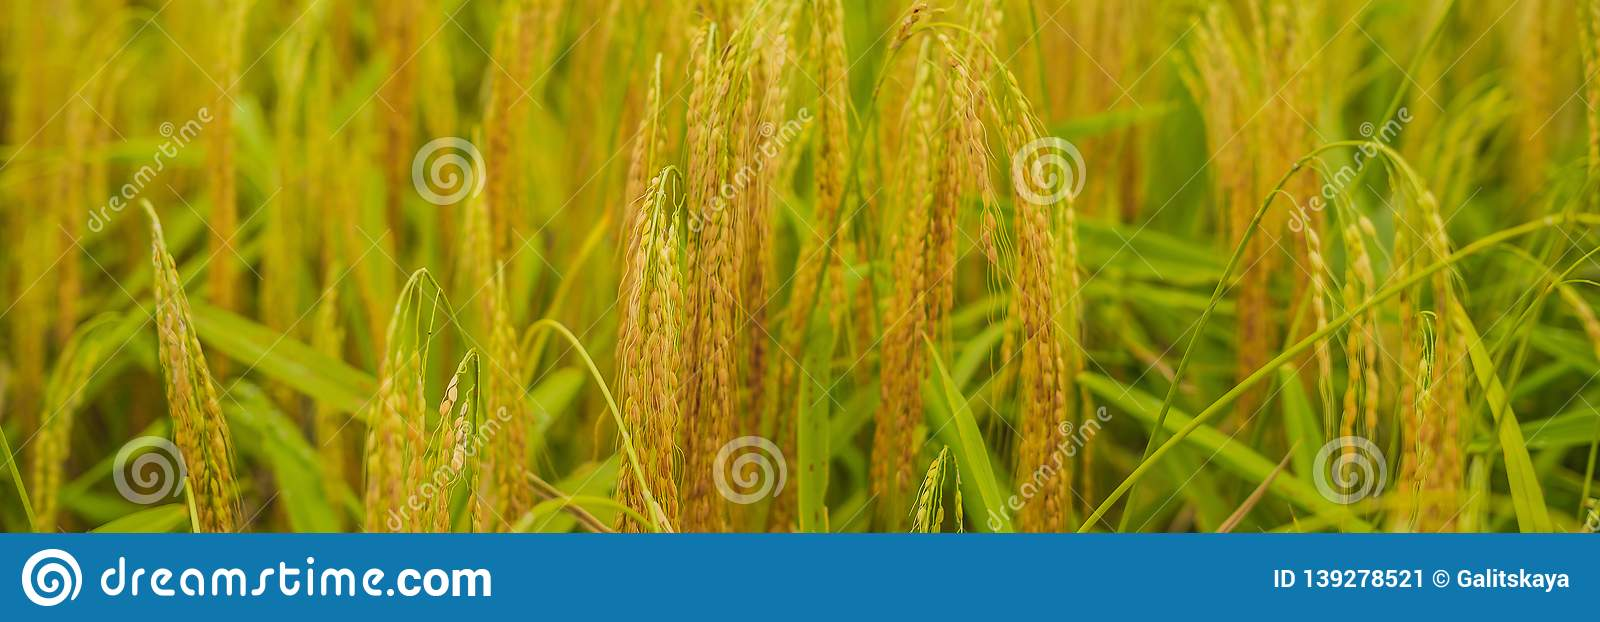 Ripe ears of rice. Closeup of rice ear on plantation BANNER, long format